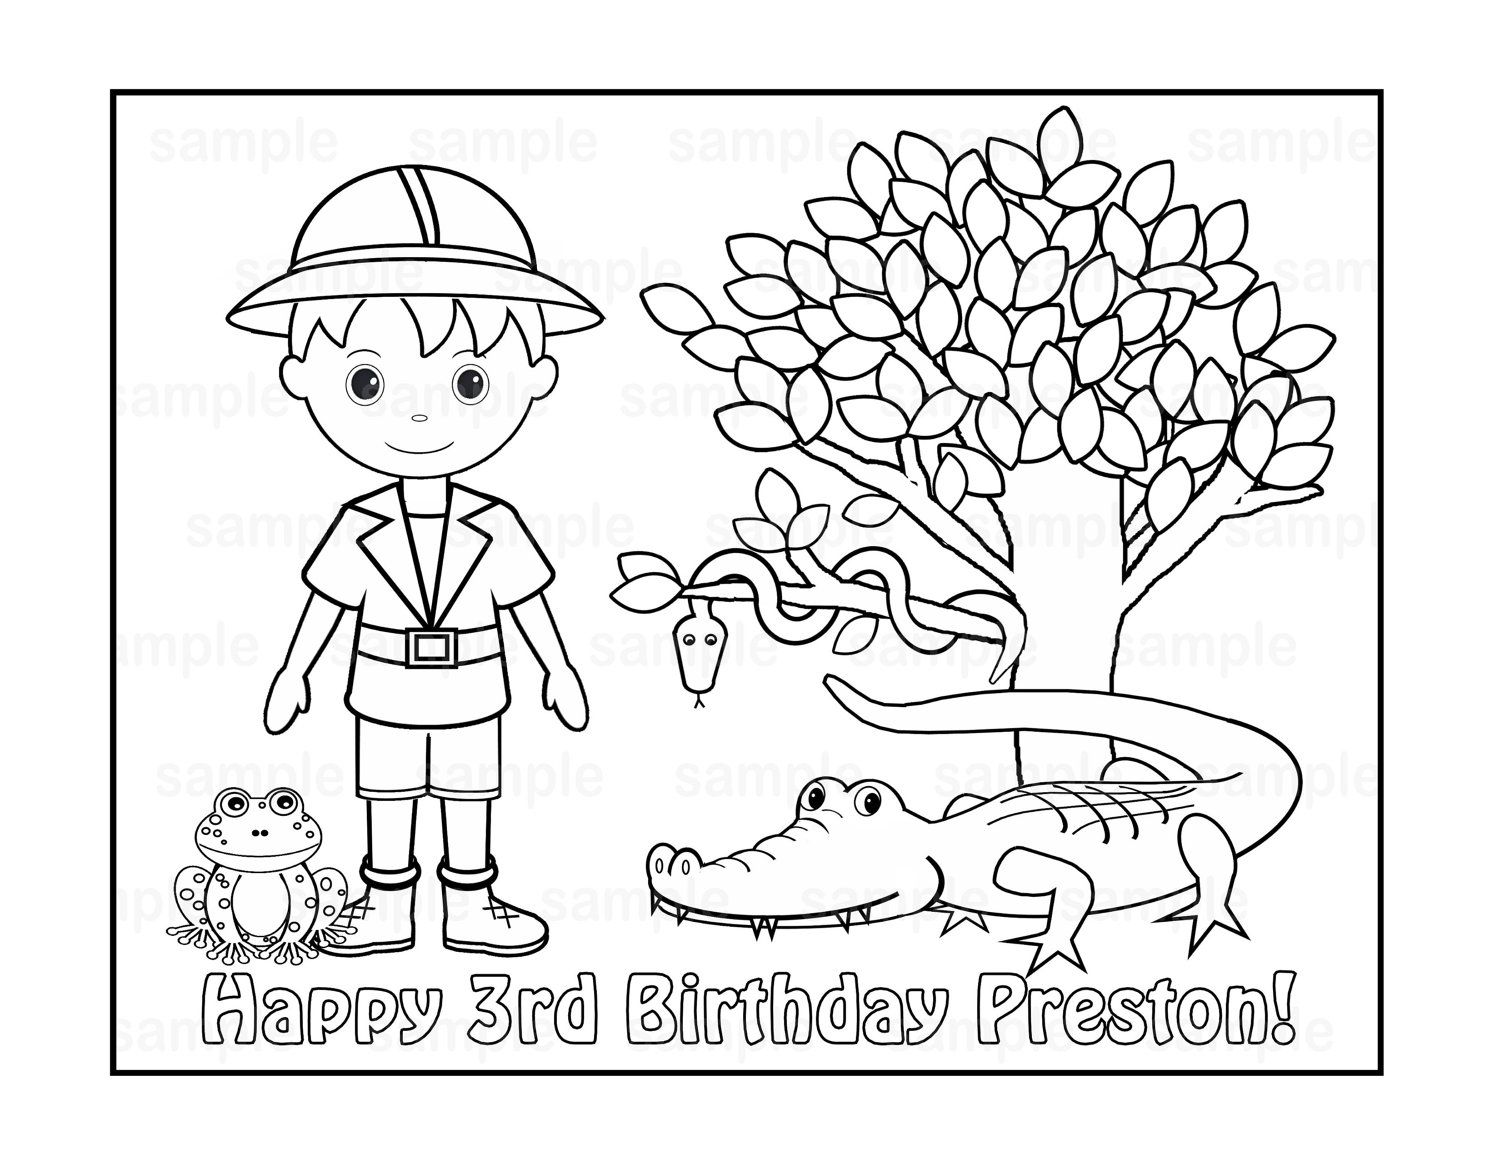 Printable coloring pages jungle animals - Free Jungle Printables Coloring Pages Jungle Coloring Pages Personalized Printable Safari Jungle Girl Boy By